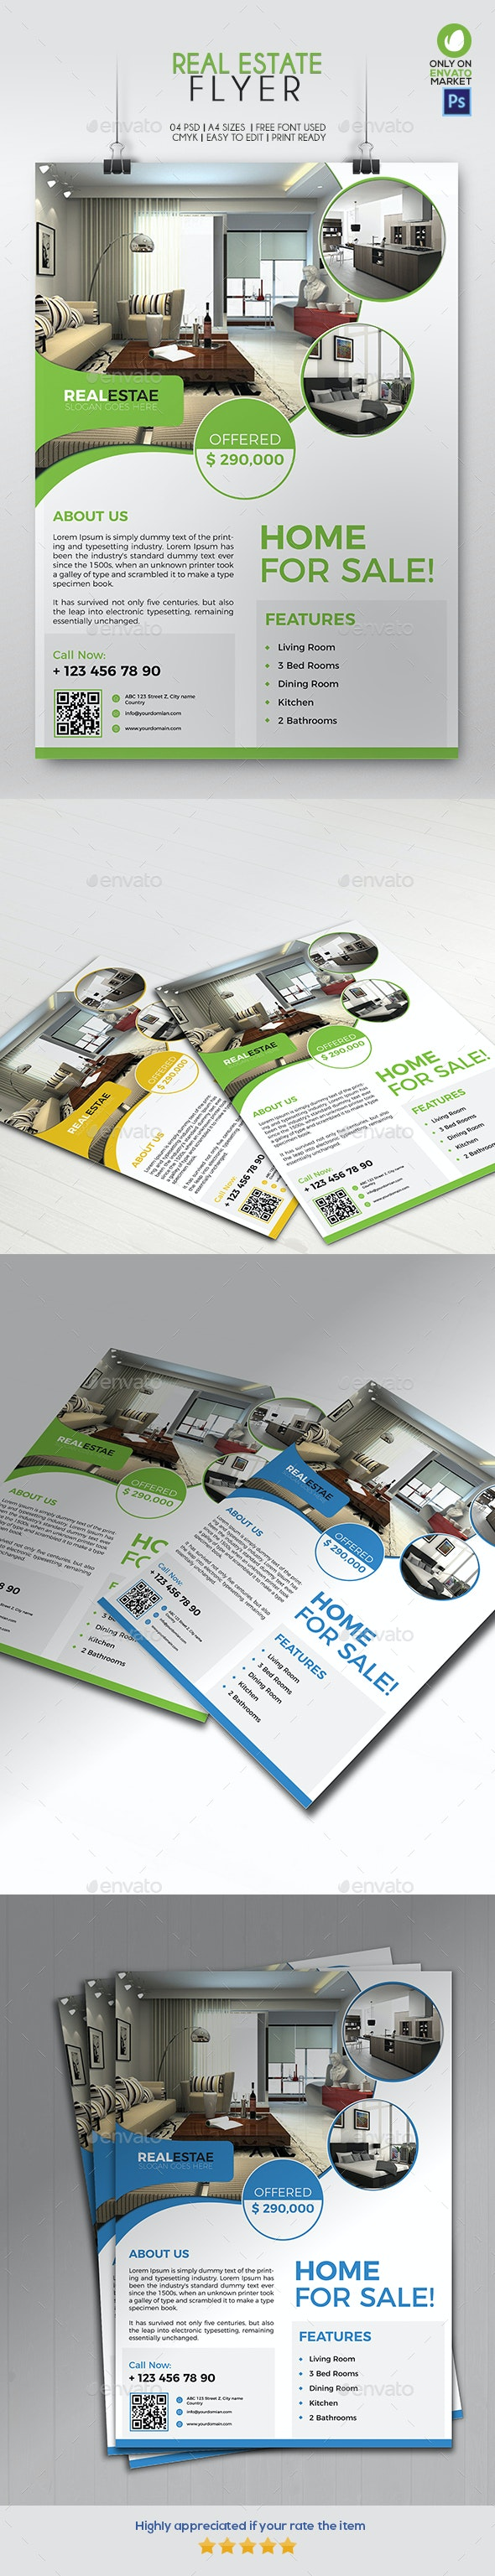 Real Estate Flyer 01 - Corporate Flyers